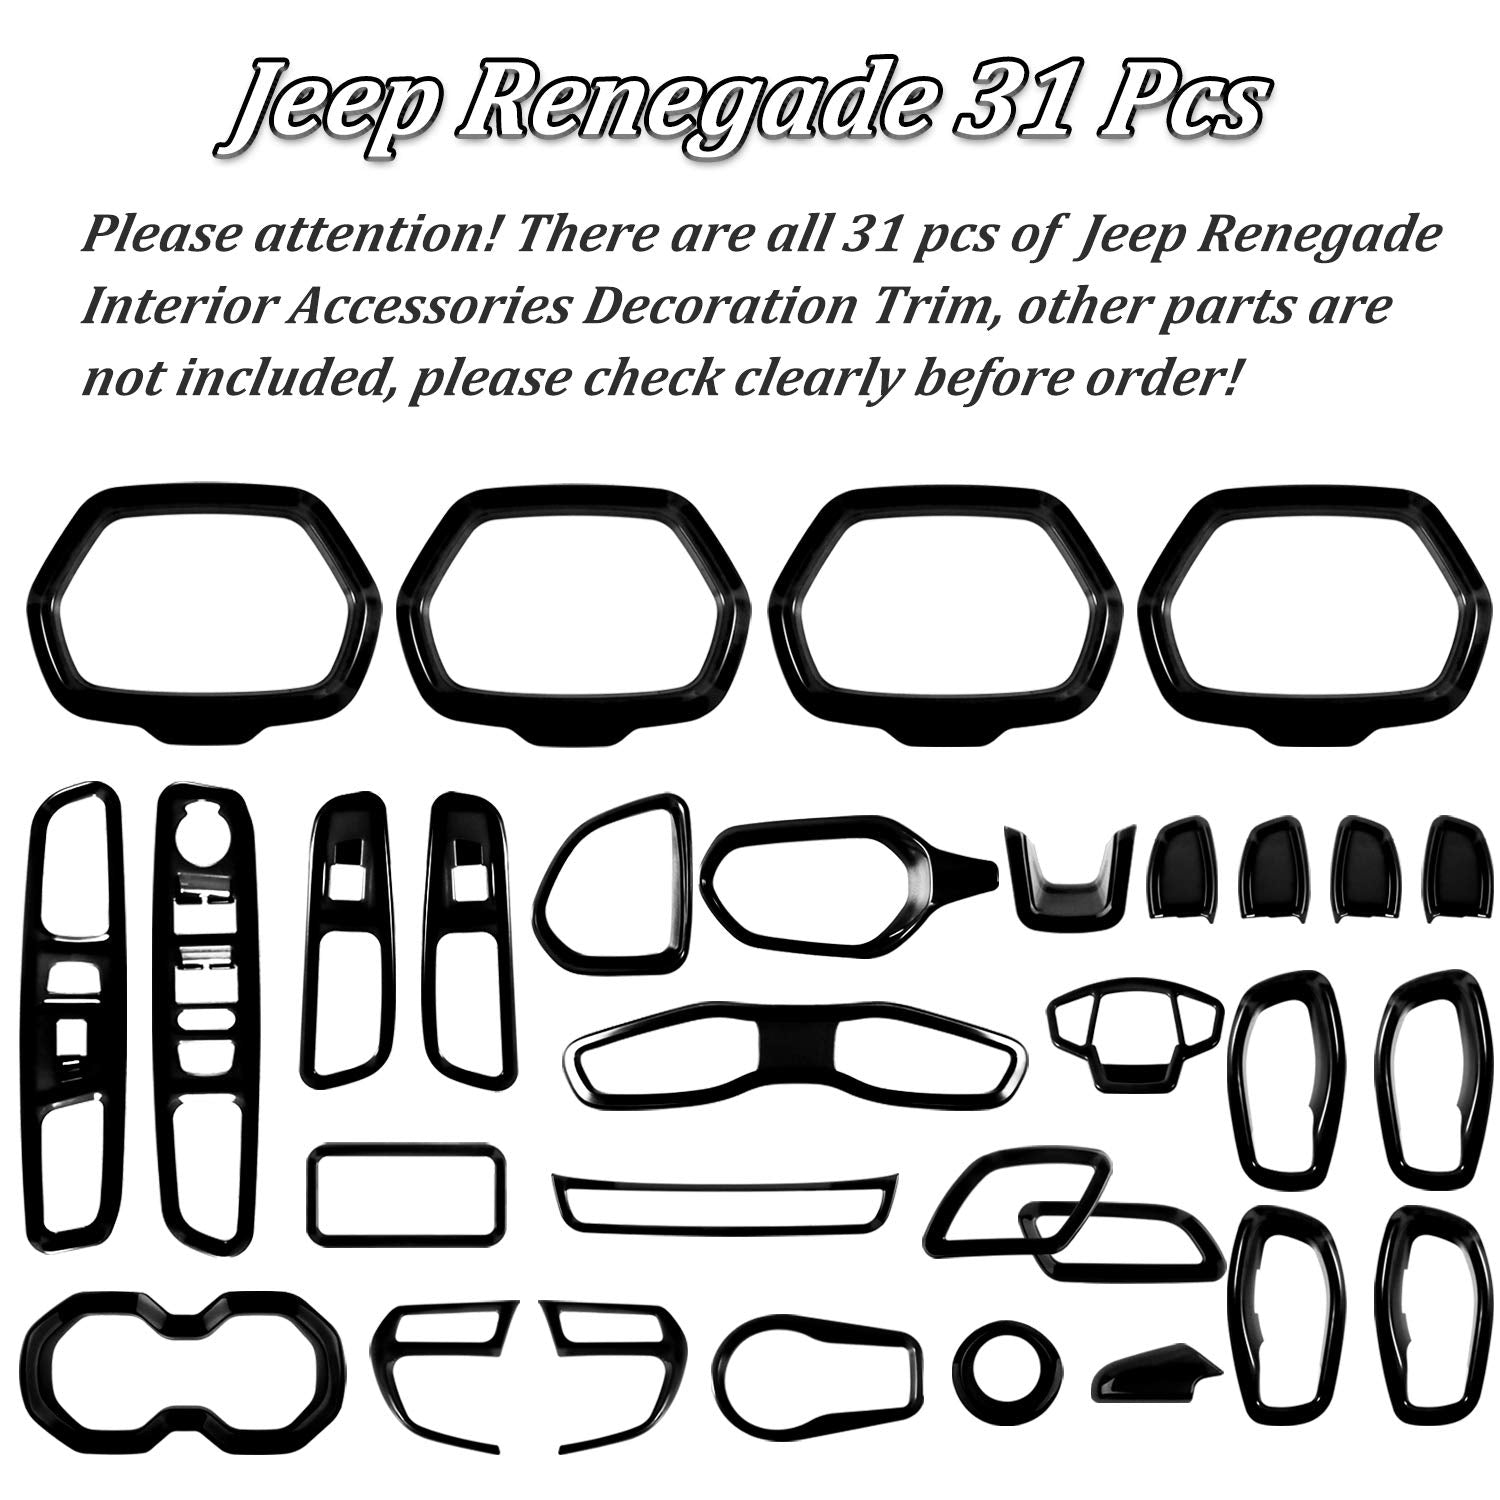 Full Set Trim Kit for Jeep Renegade 2015-2020